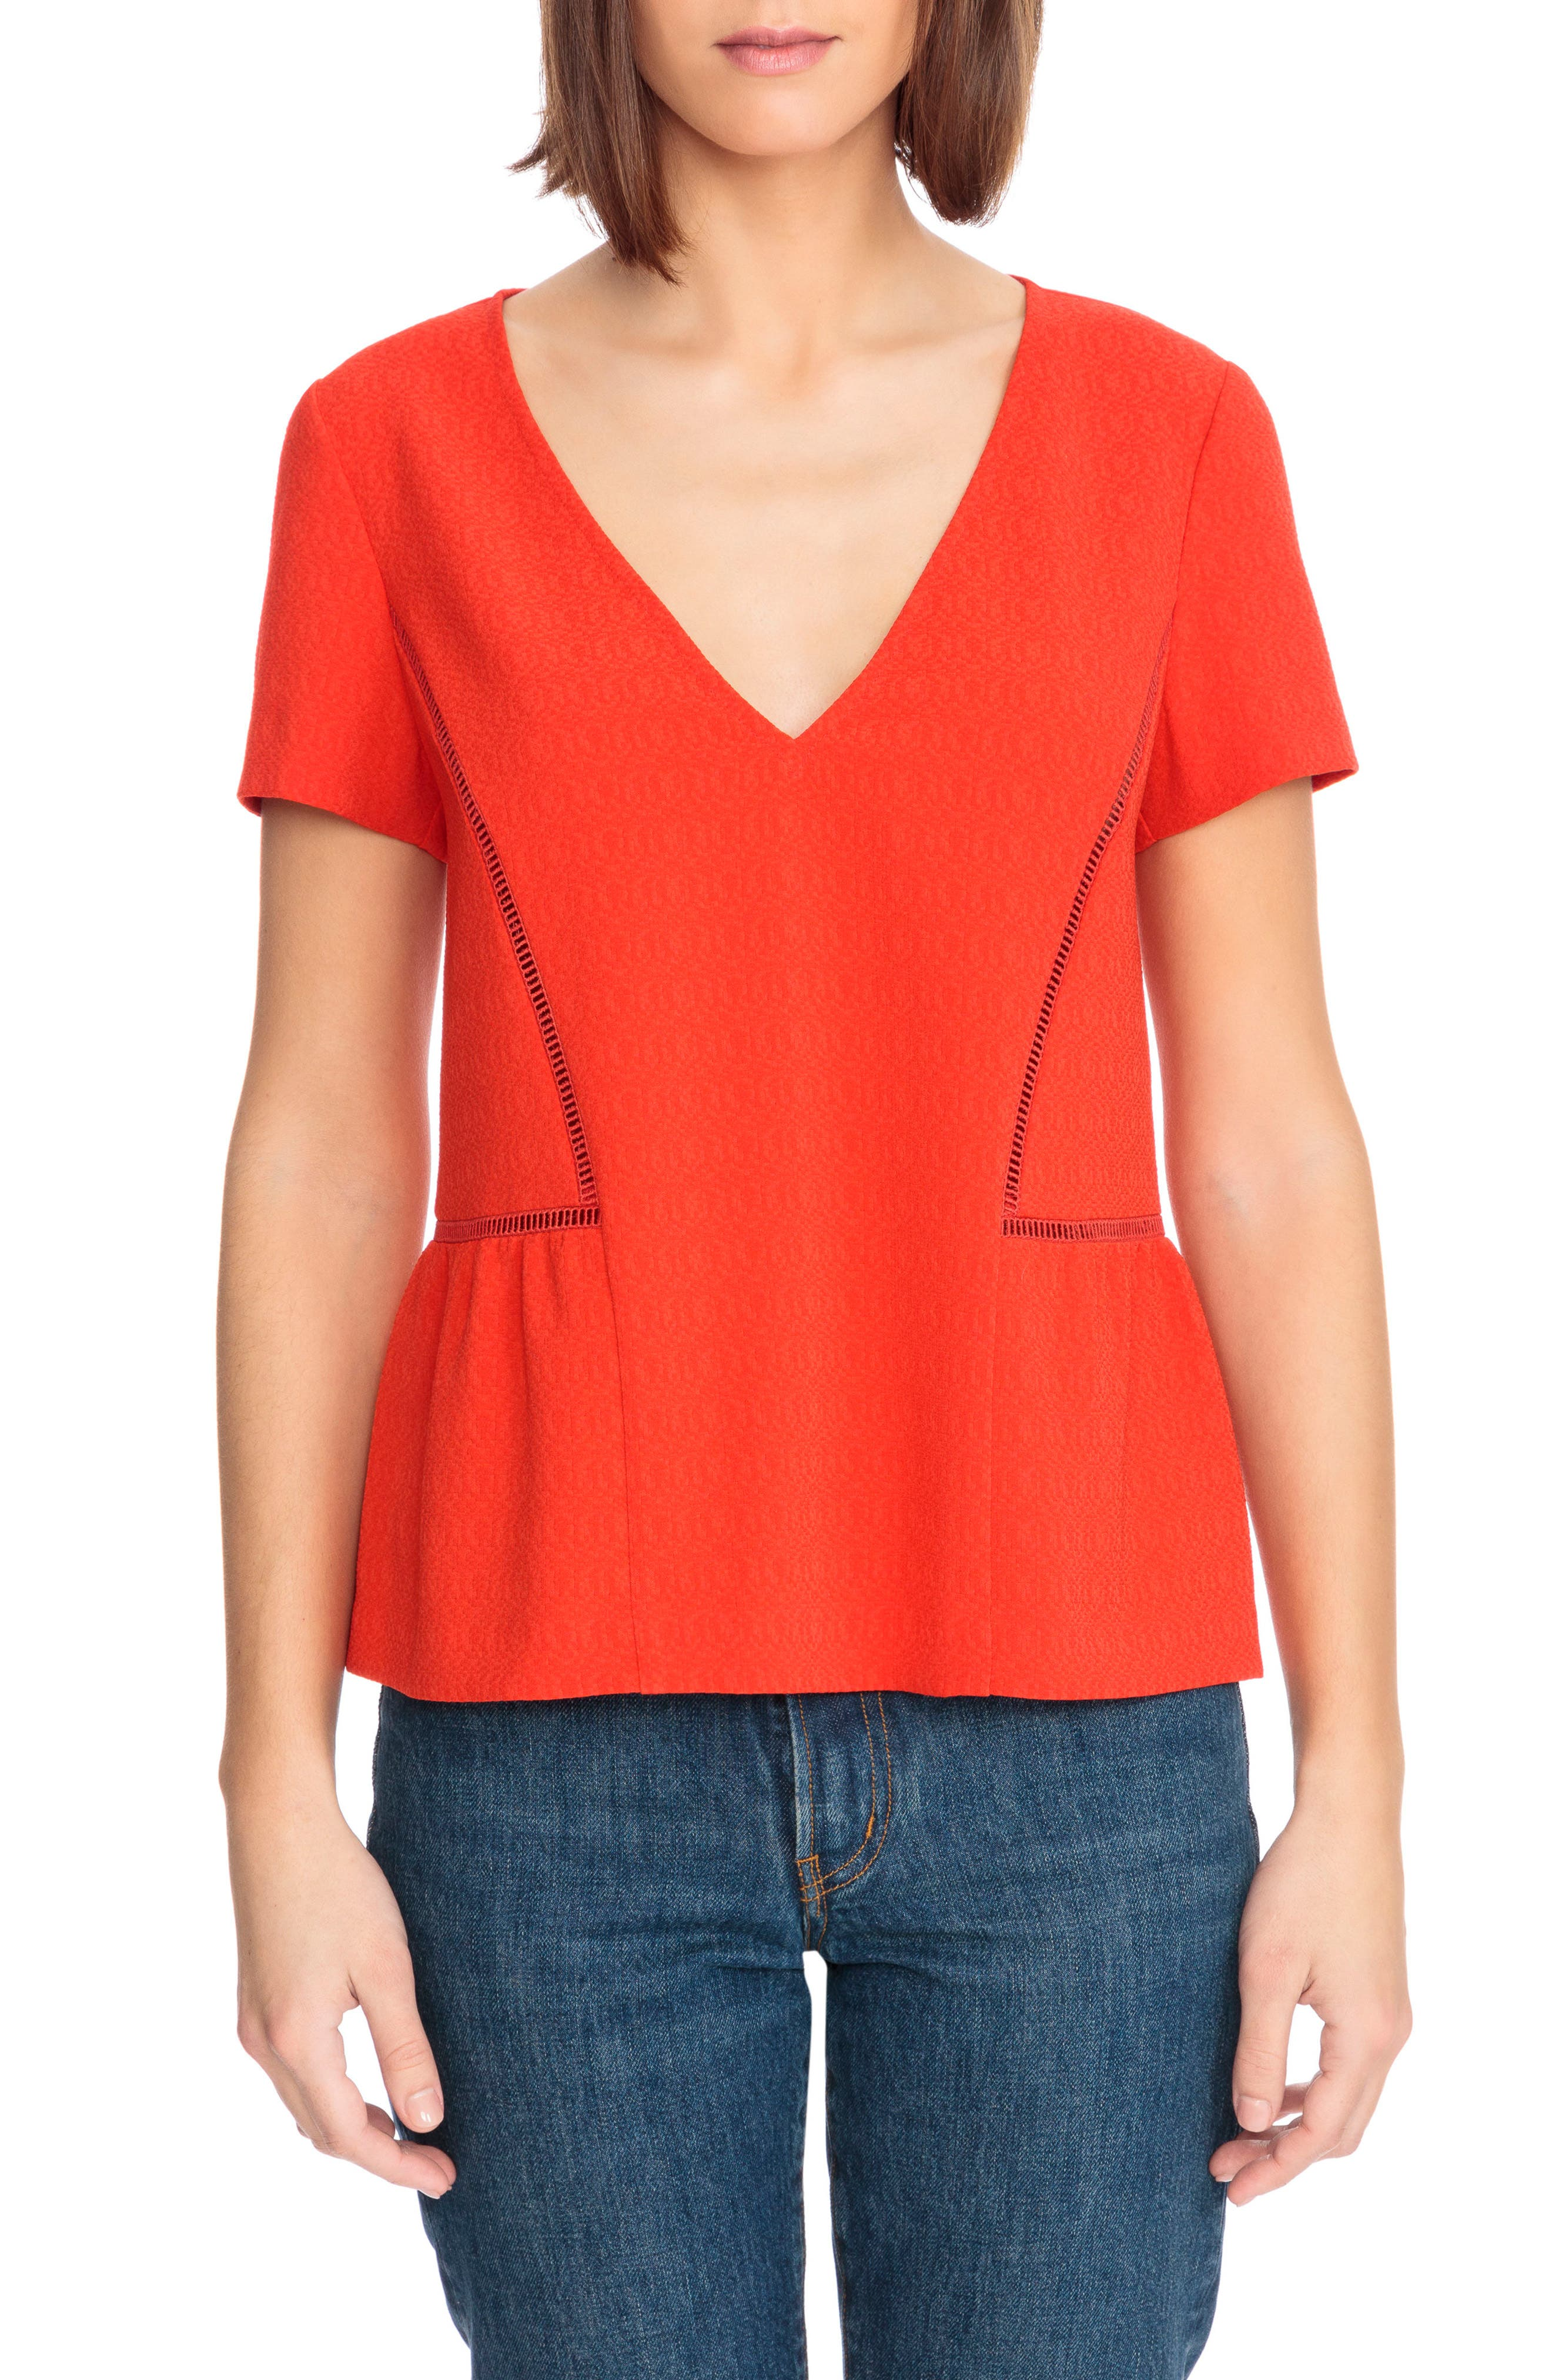 Amanda Ladder Stitch Blouse,                         Main,                         color, Coral Red